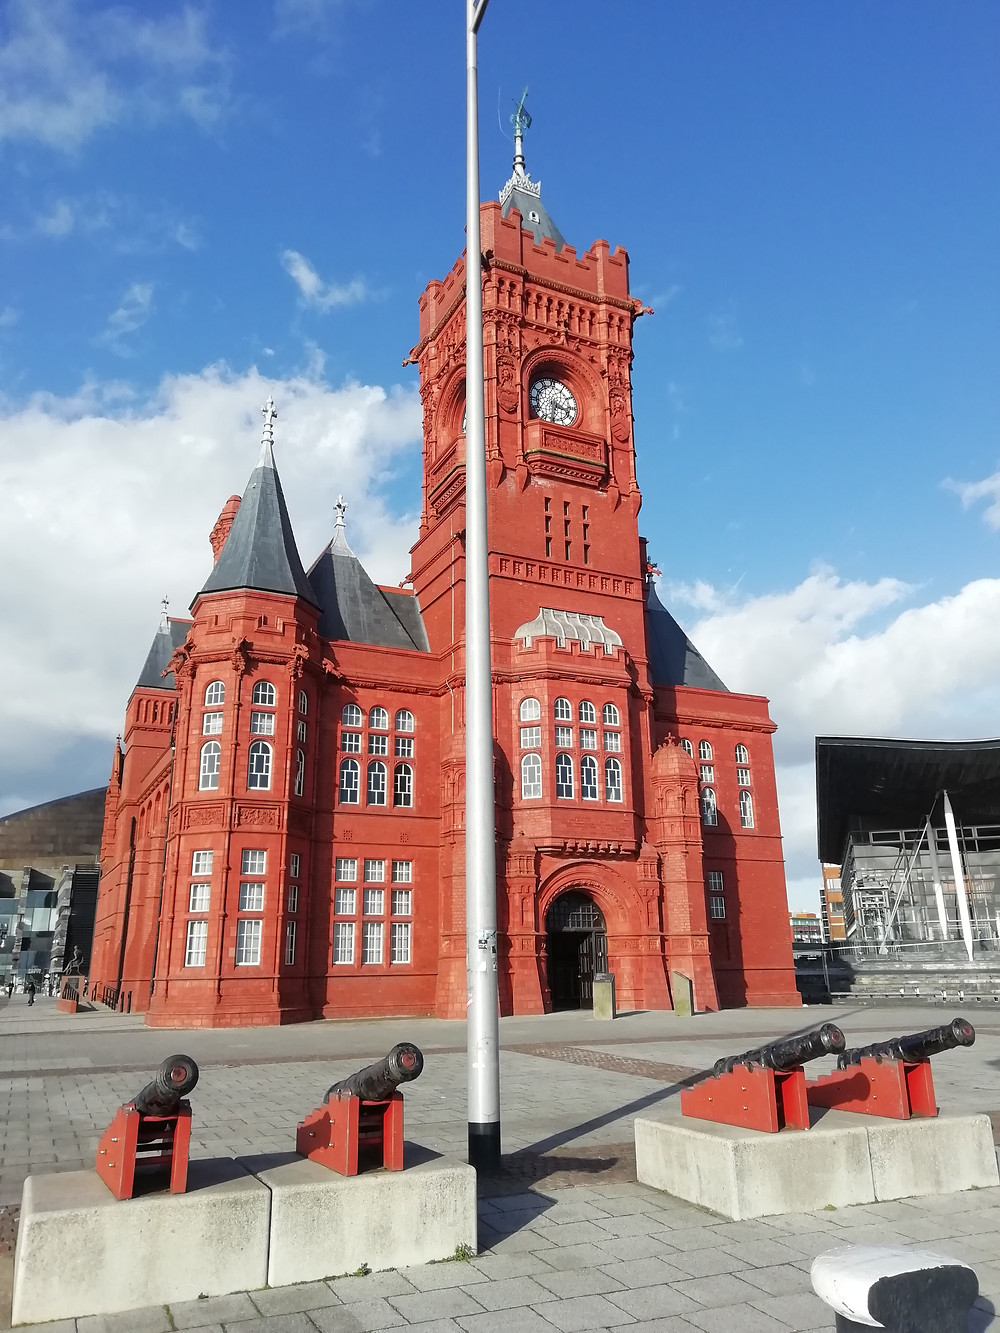 The Pierhead building in Cardiff Bay.